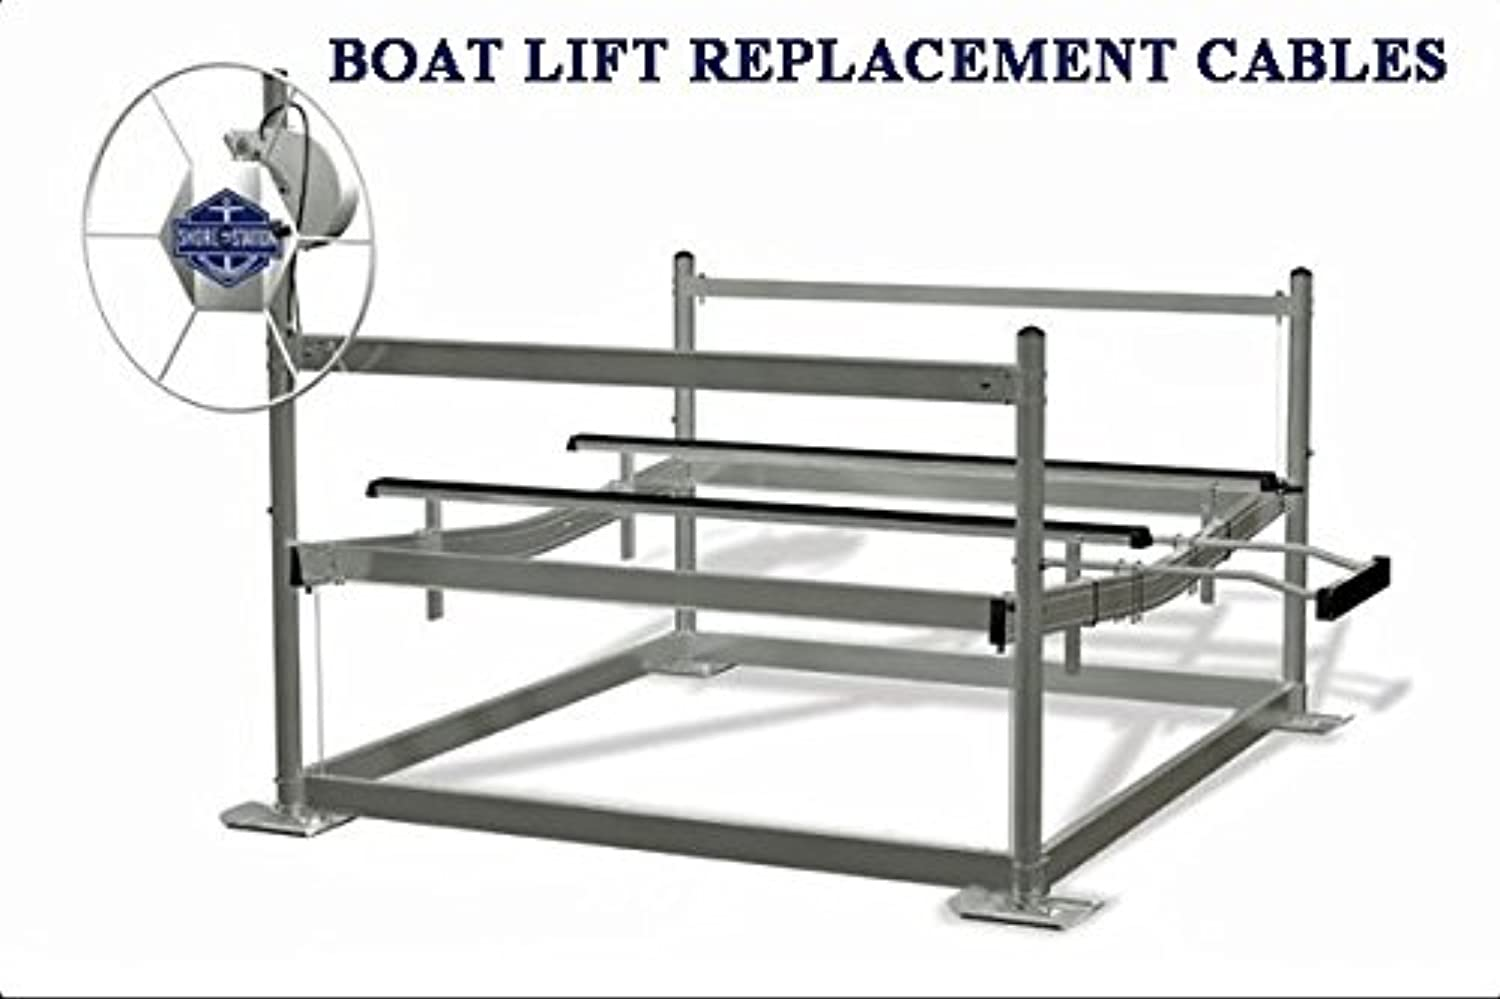 Boat Lift Model SSV40108 Replacement Stainless Steel Cable Package (All 4 Cables included) for Shorestation Lift